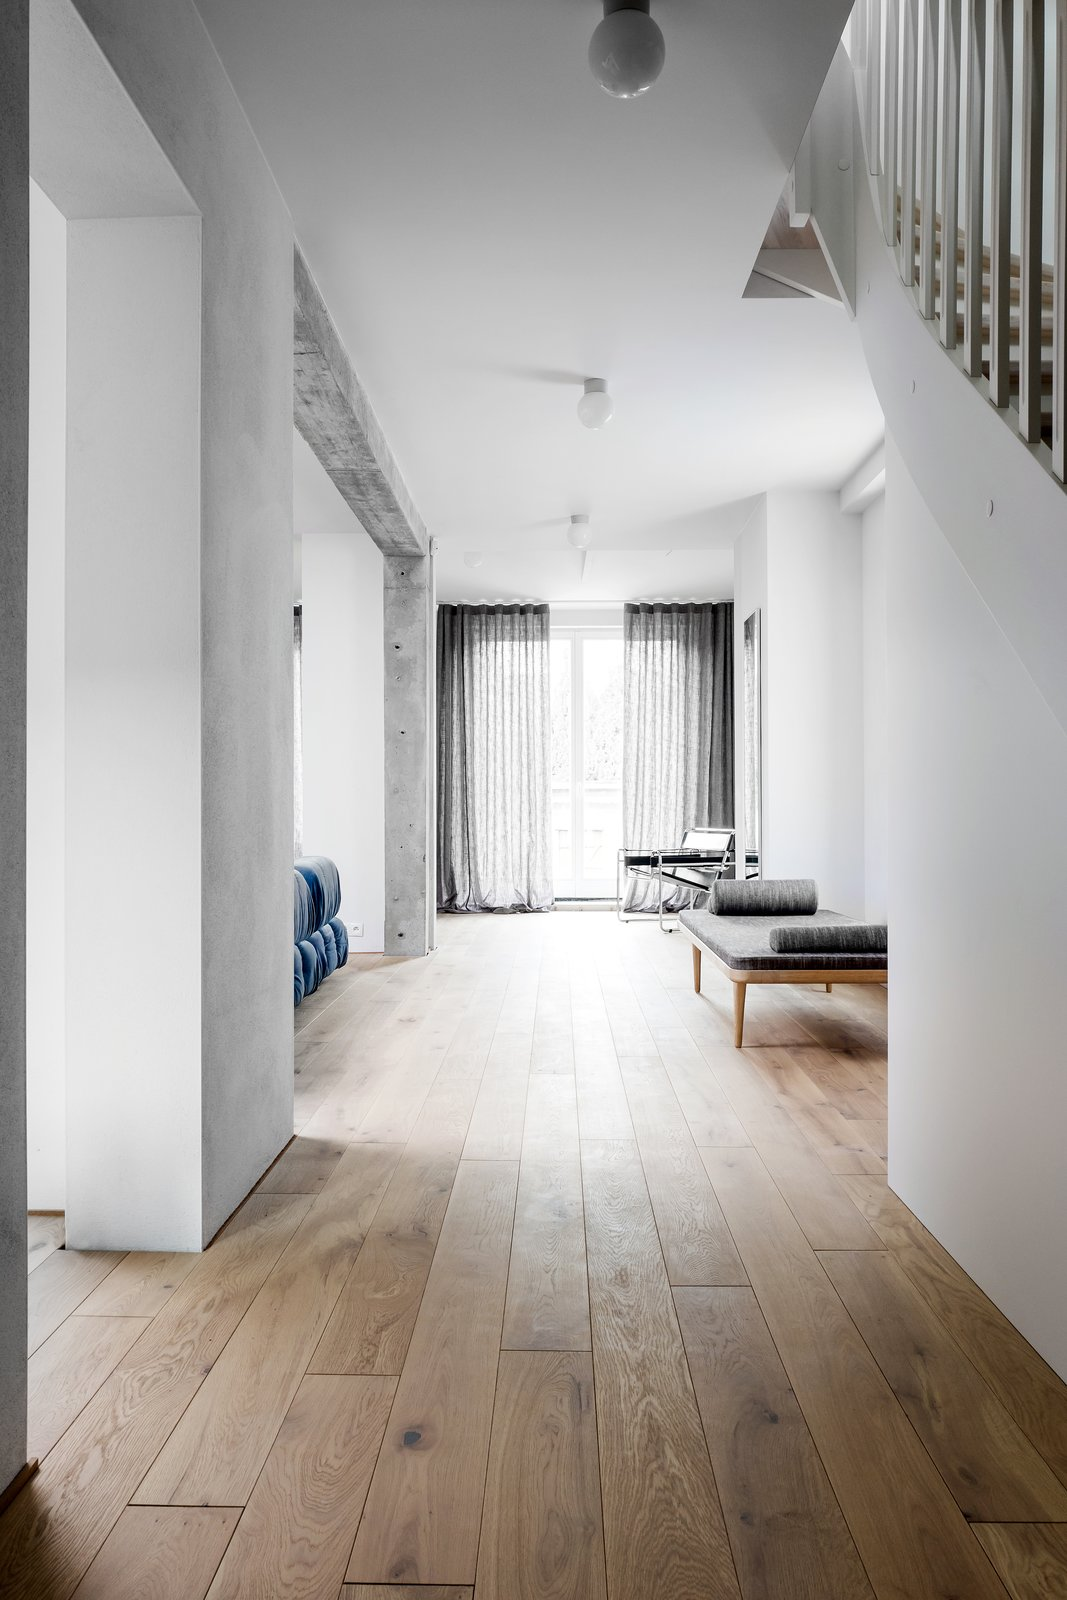 Hallway and Light Hardwood Floor  Photo 3 of 12 in A Family's Loft in Poland Gets a Minimalist Renovation That's Both Elegant and Functional